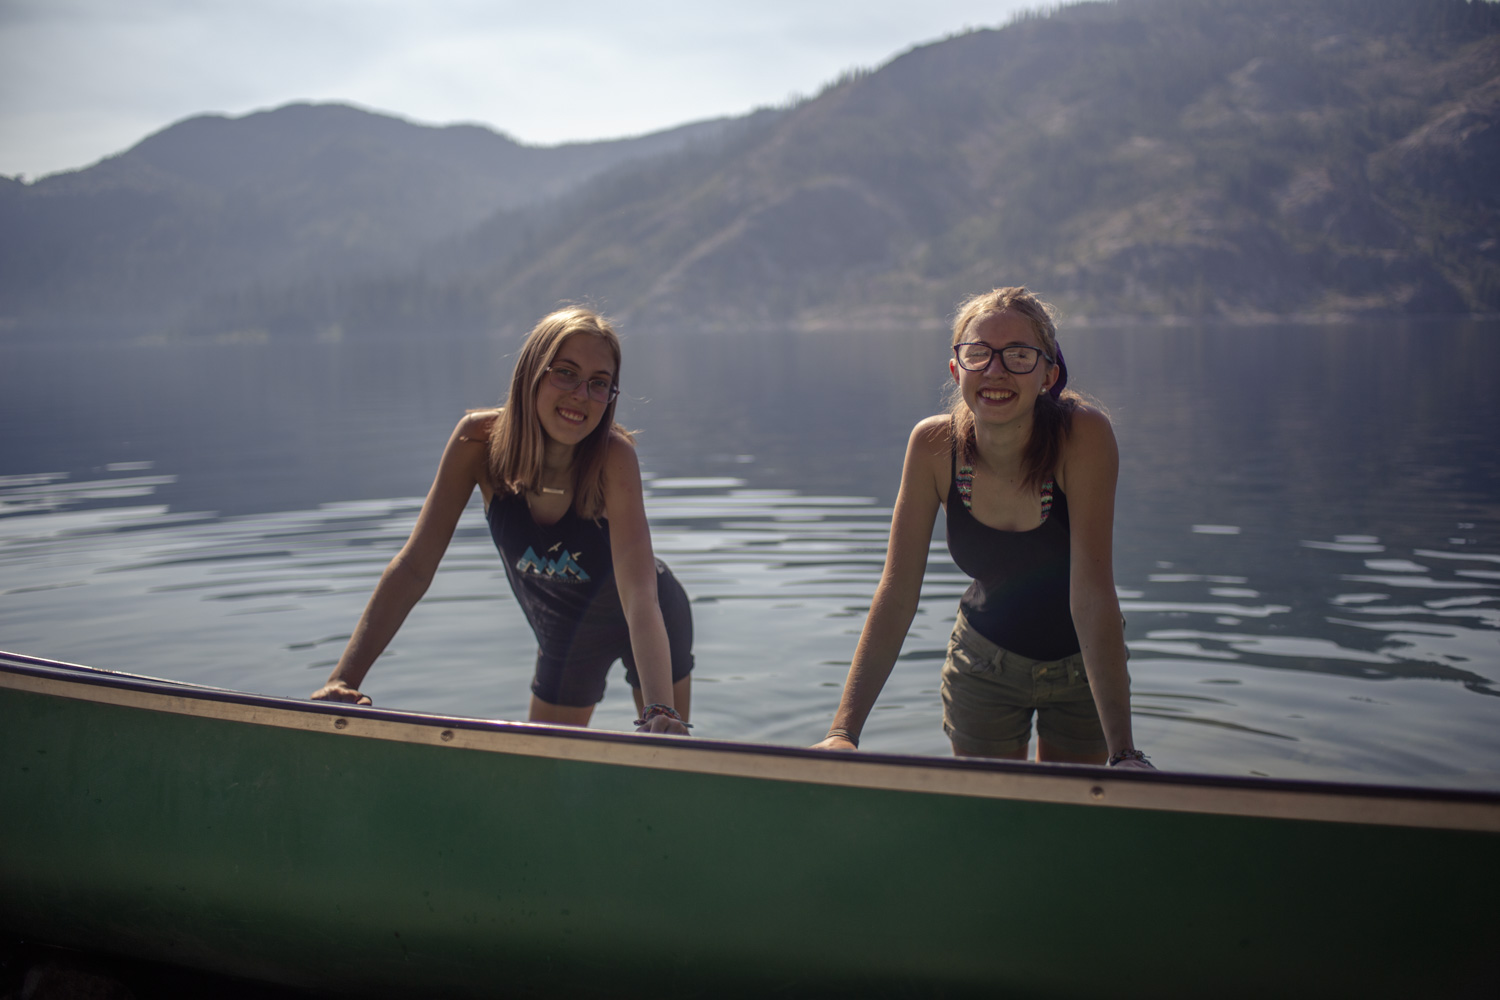 Summer camp can help your daughter's empathy and understanding of others.